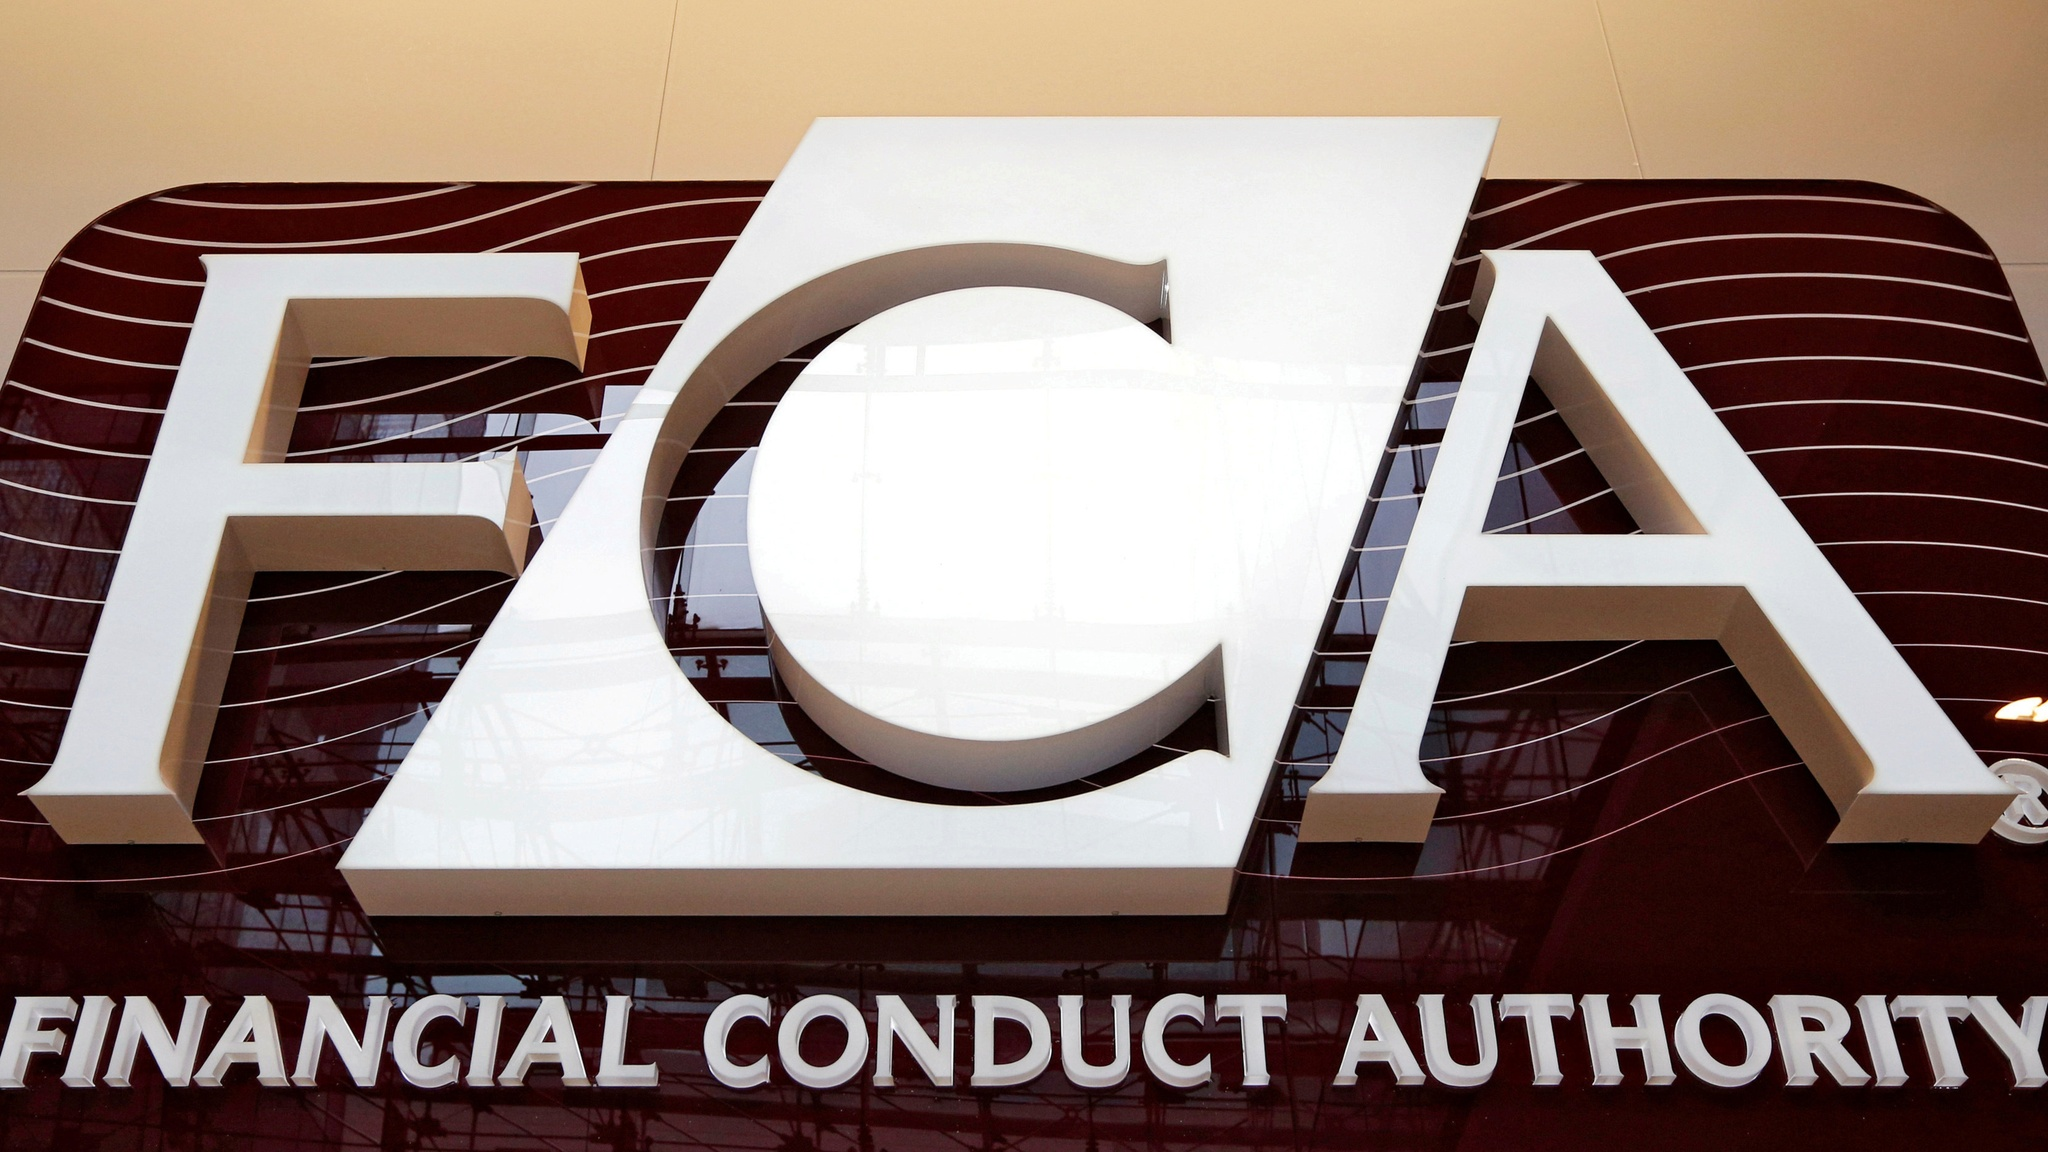 UK financial regulator to tighten 'buy now pay later' rules